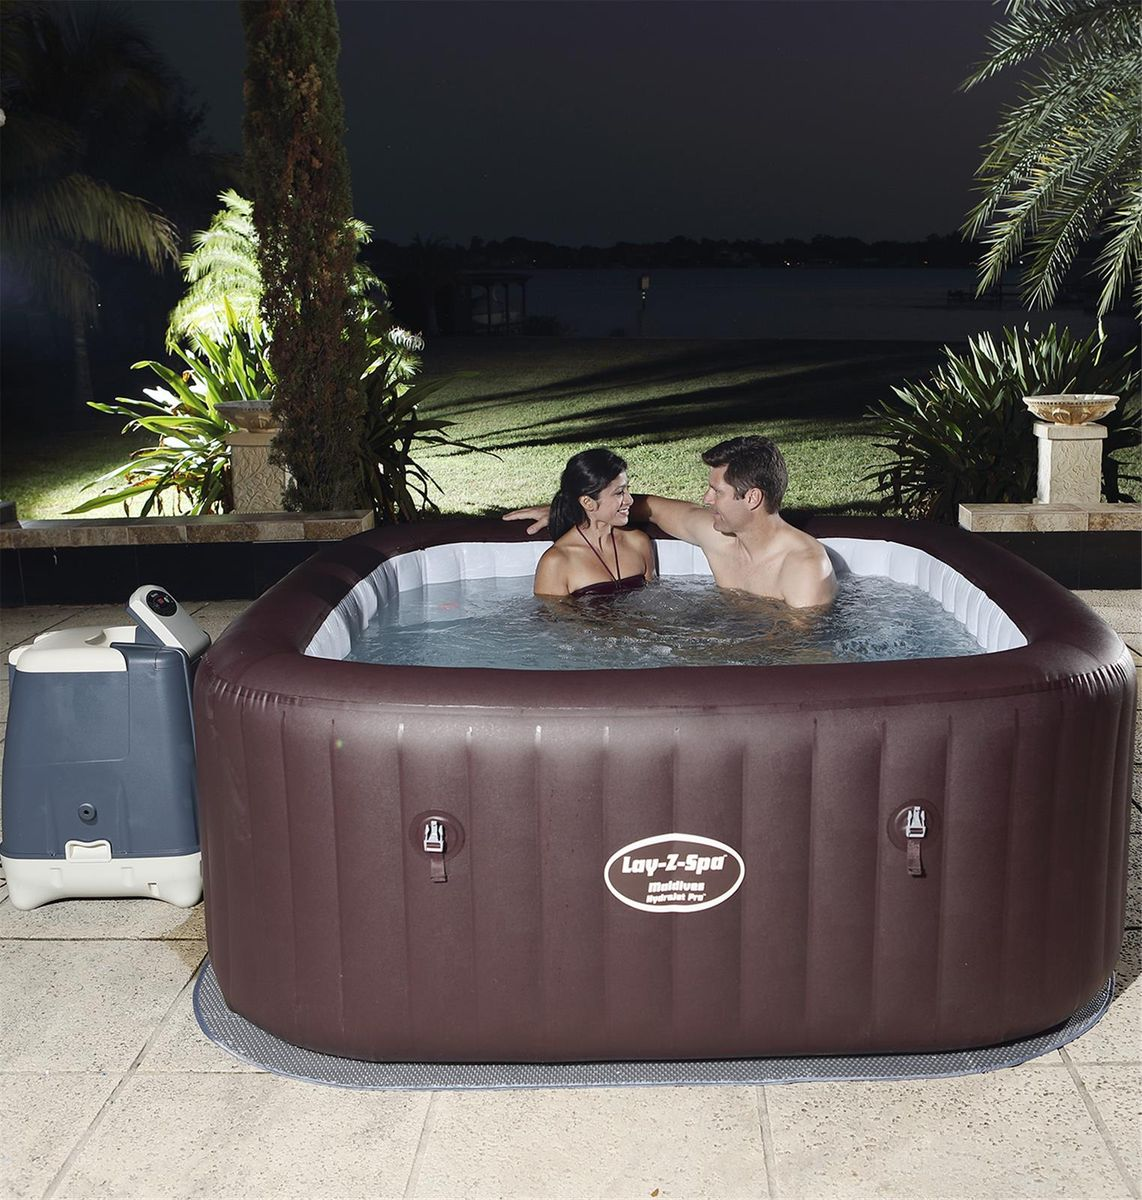 SPA GONFLABLE BESTWAY LAY-Z-SPA MALDIVES HYDROJET PRO 5-7 pers